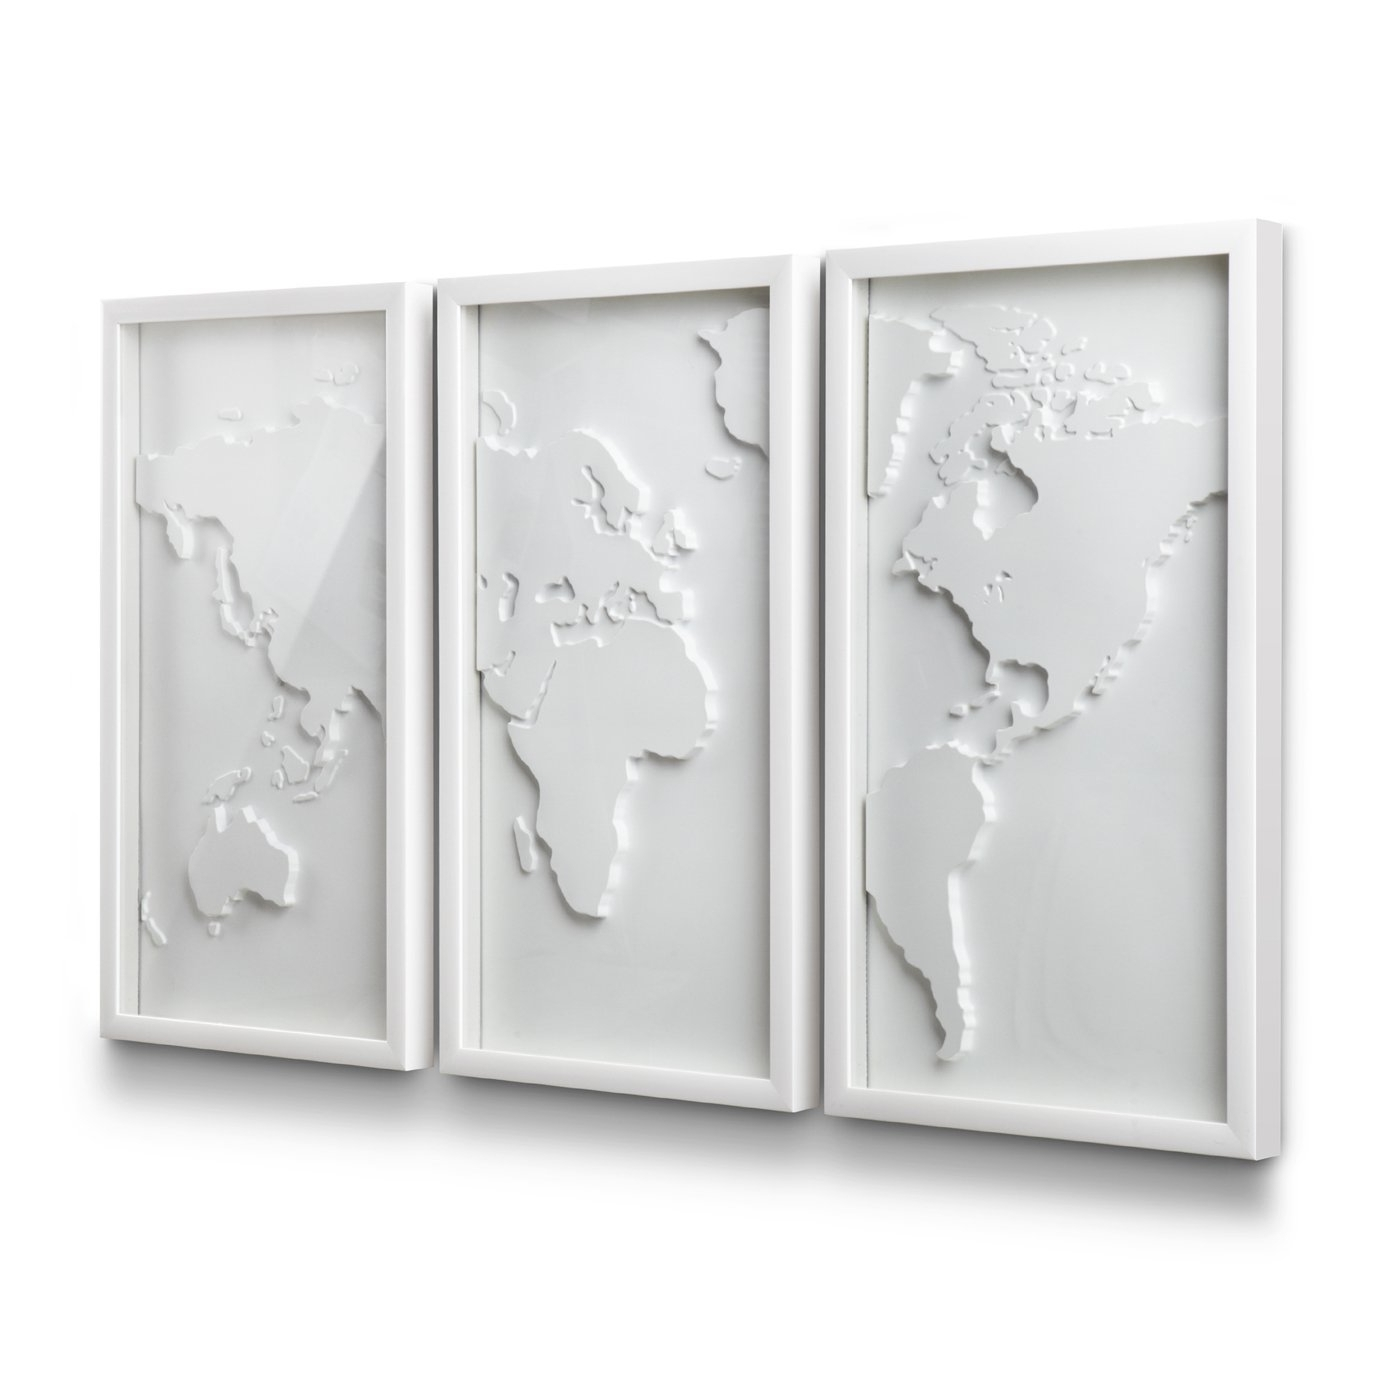 Umbra 3D Wall Art Within Most Popular Umbra 470180 660 Mapster Wall Decor (Set Of 3) (View 13 of 15)